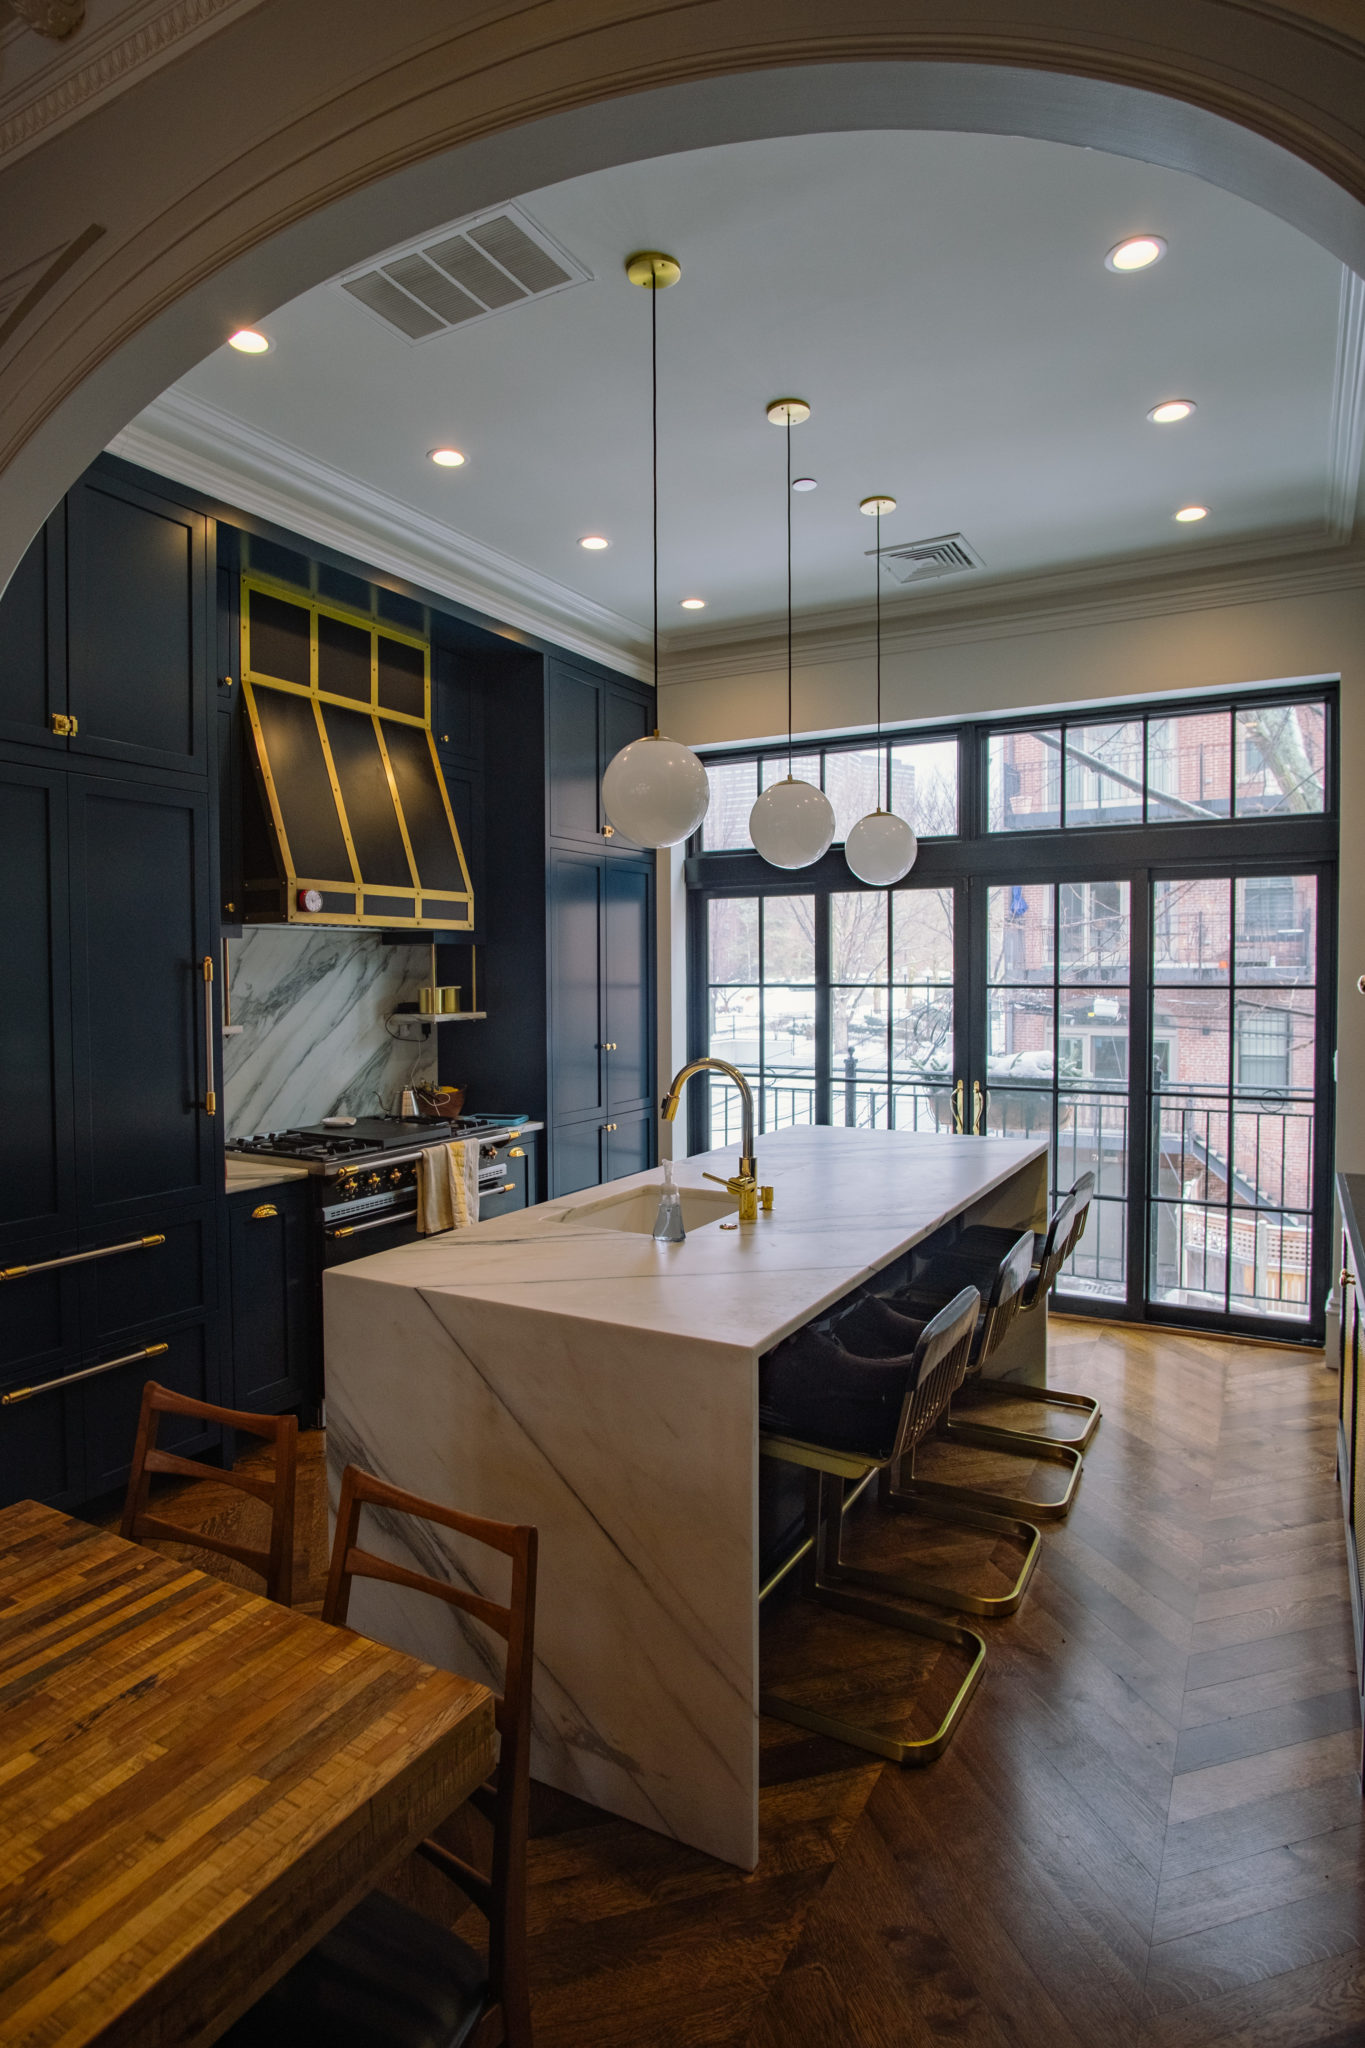 Kitchen with high ceilings, recessed lighting, french stove and vent, waterfall island